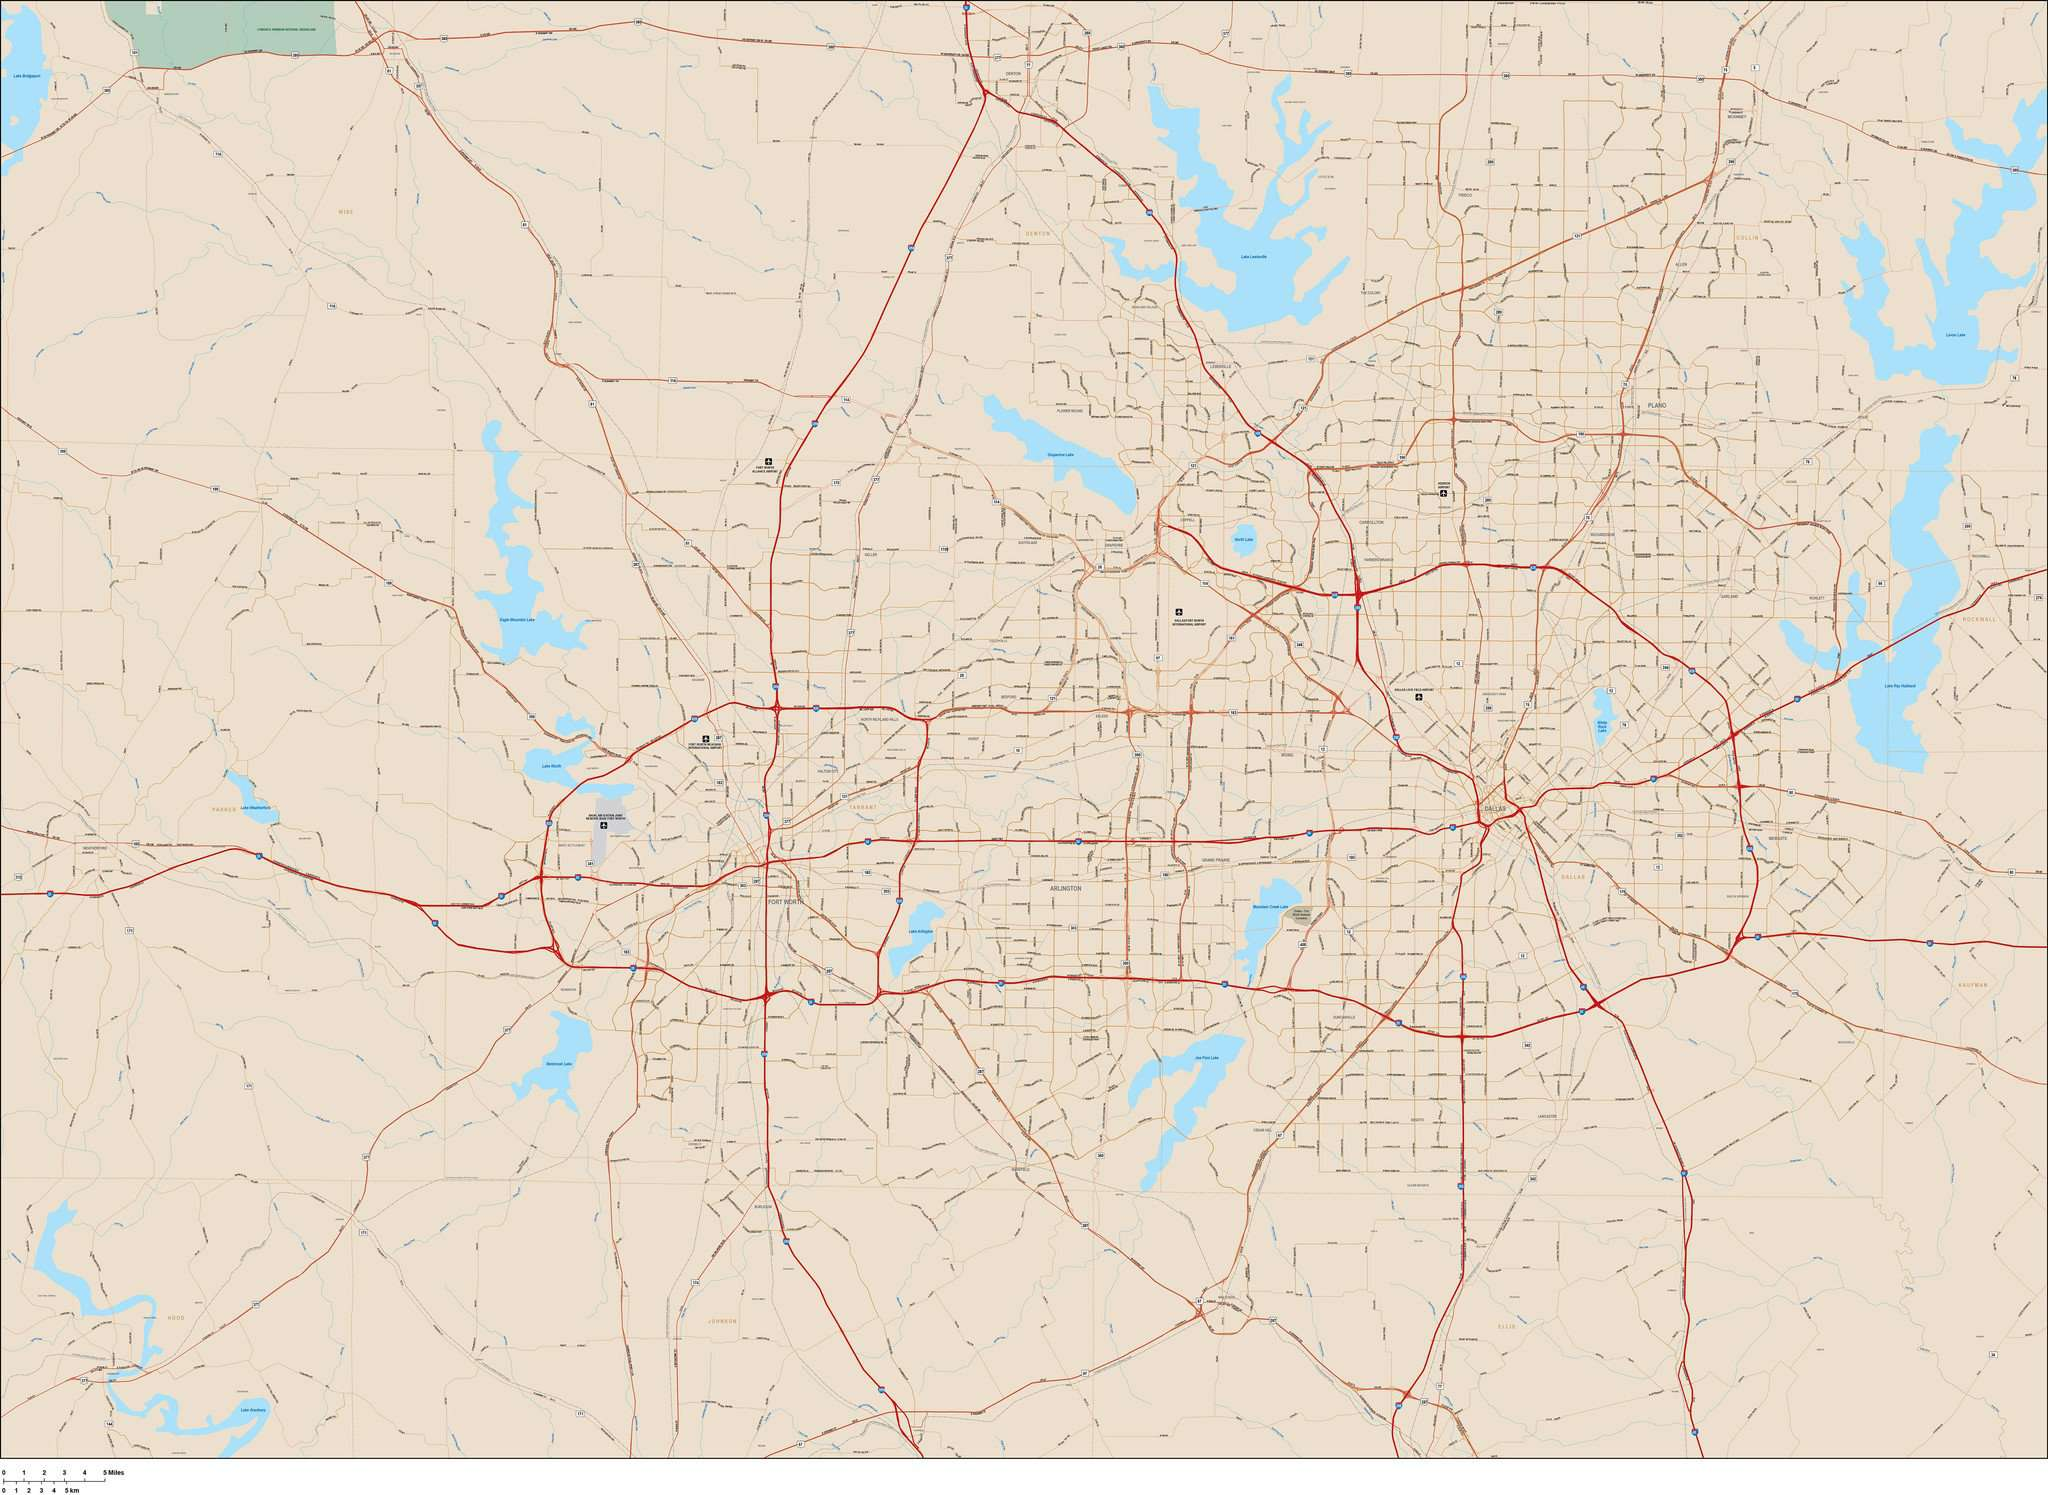 Dallas and Fort Worth Metro Map in Adobe Illustrator Vector Format ...